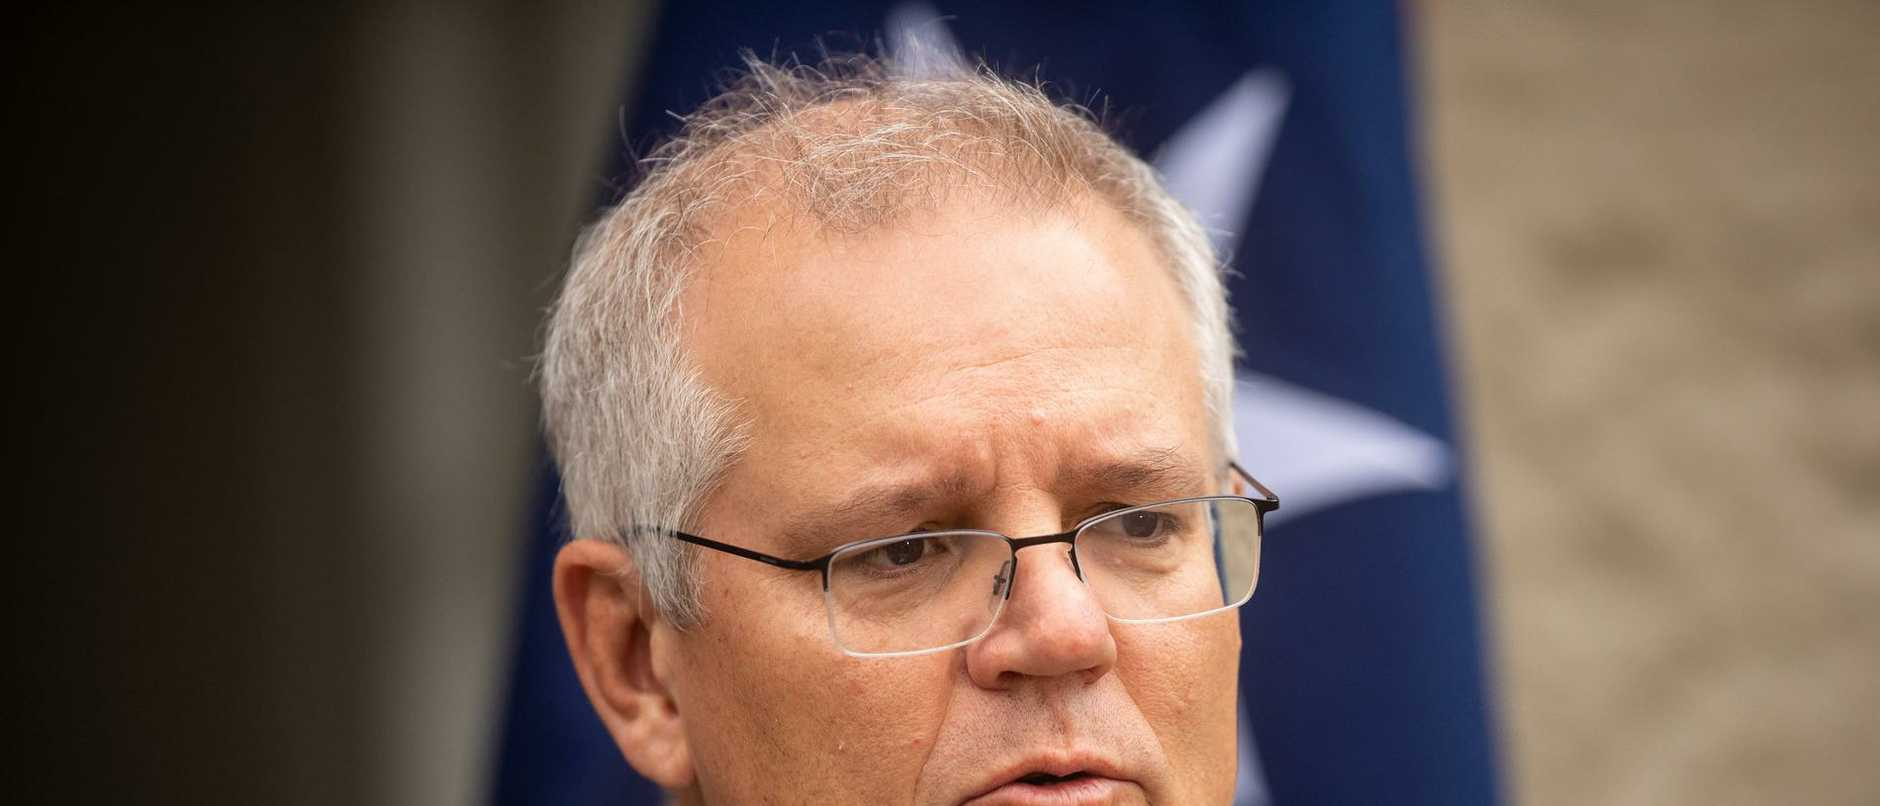 Scott Morrison has doubled down on a controversial public outburst that 'humiliated' former Australia Post CEO Christine Holgate and forced her to quit.